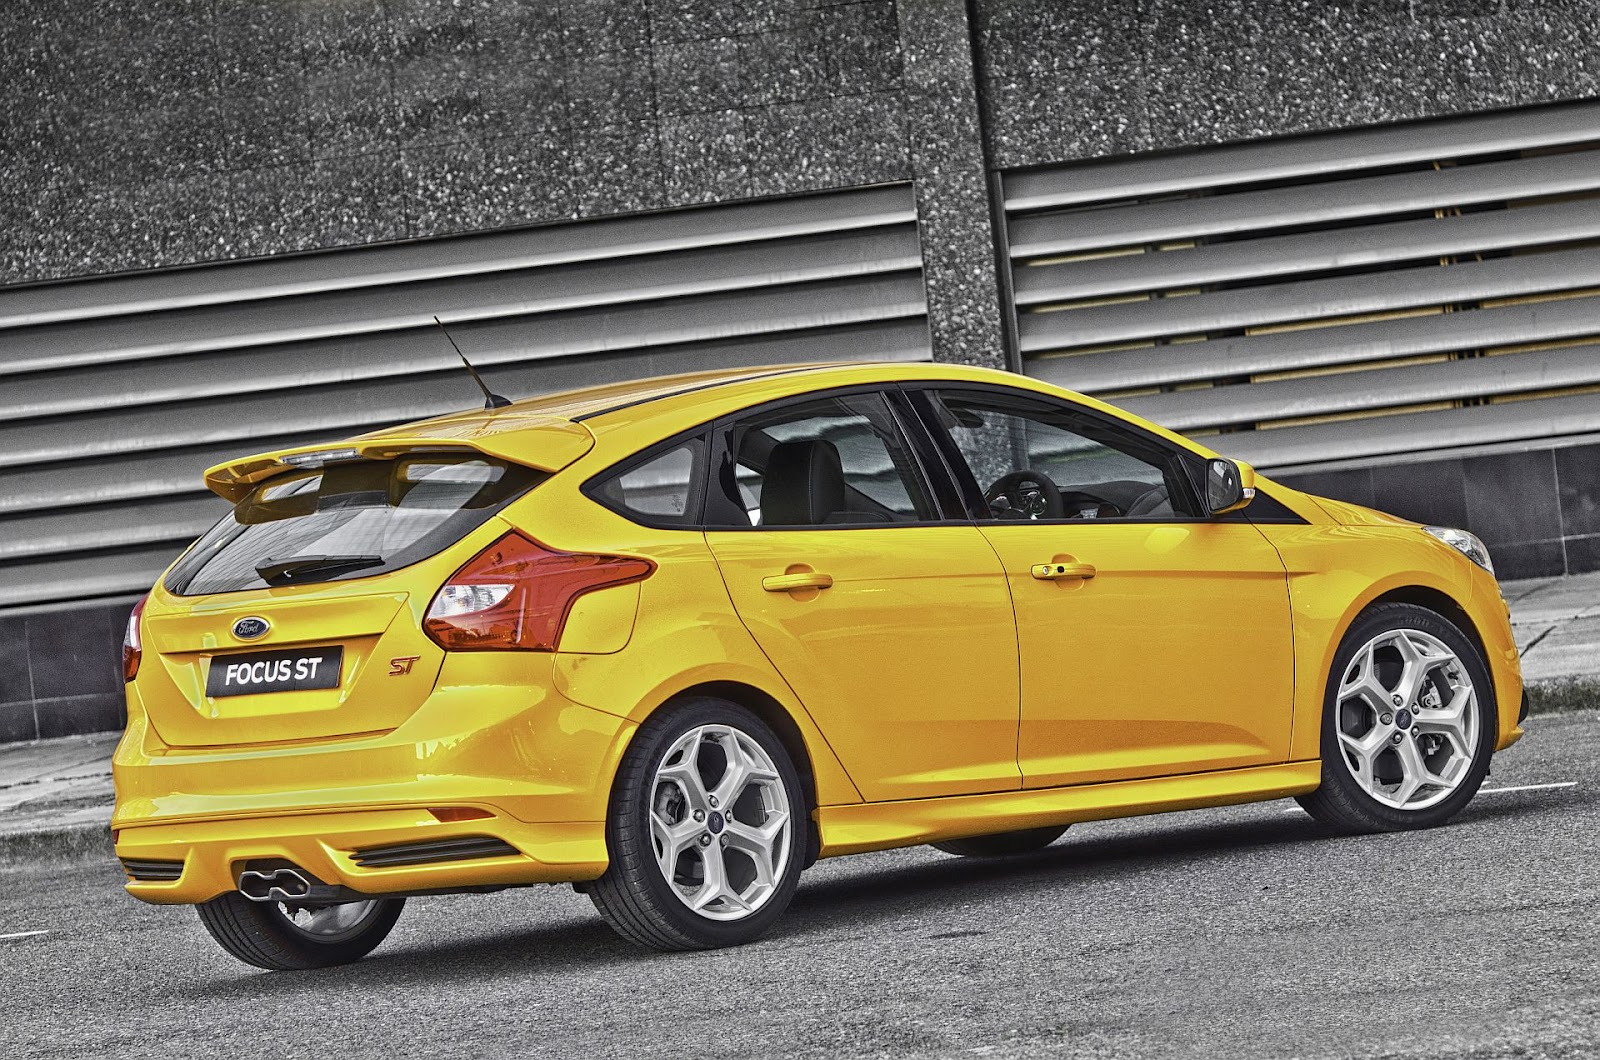 2013 ford focus st blows into mzansi bmw car gallery image. Black Bedroom Furniture Sets. Home Design Ideas